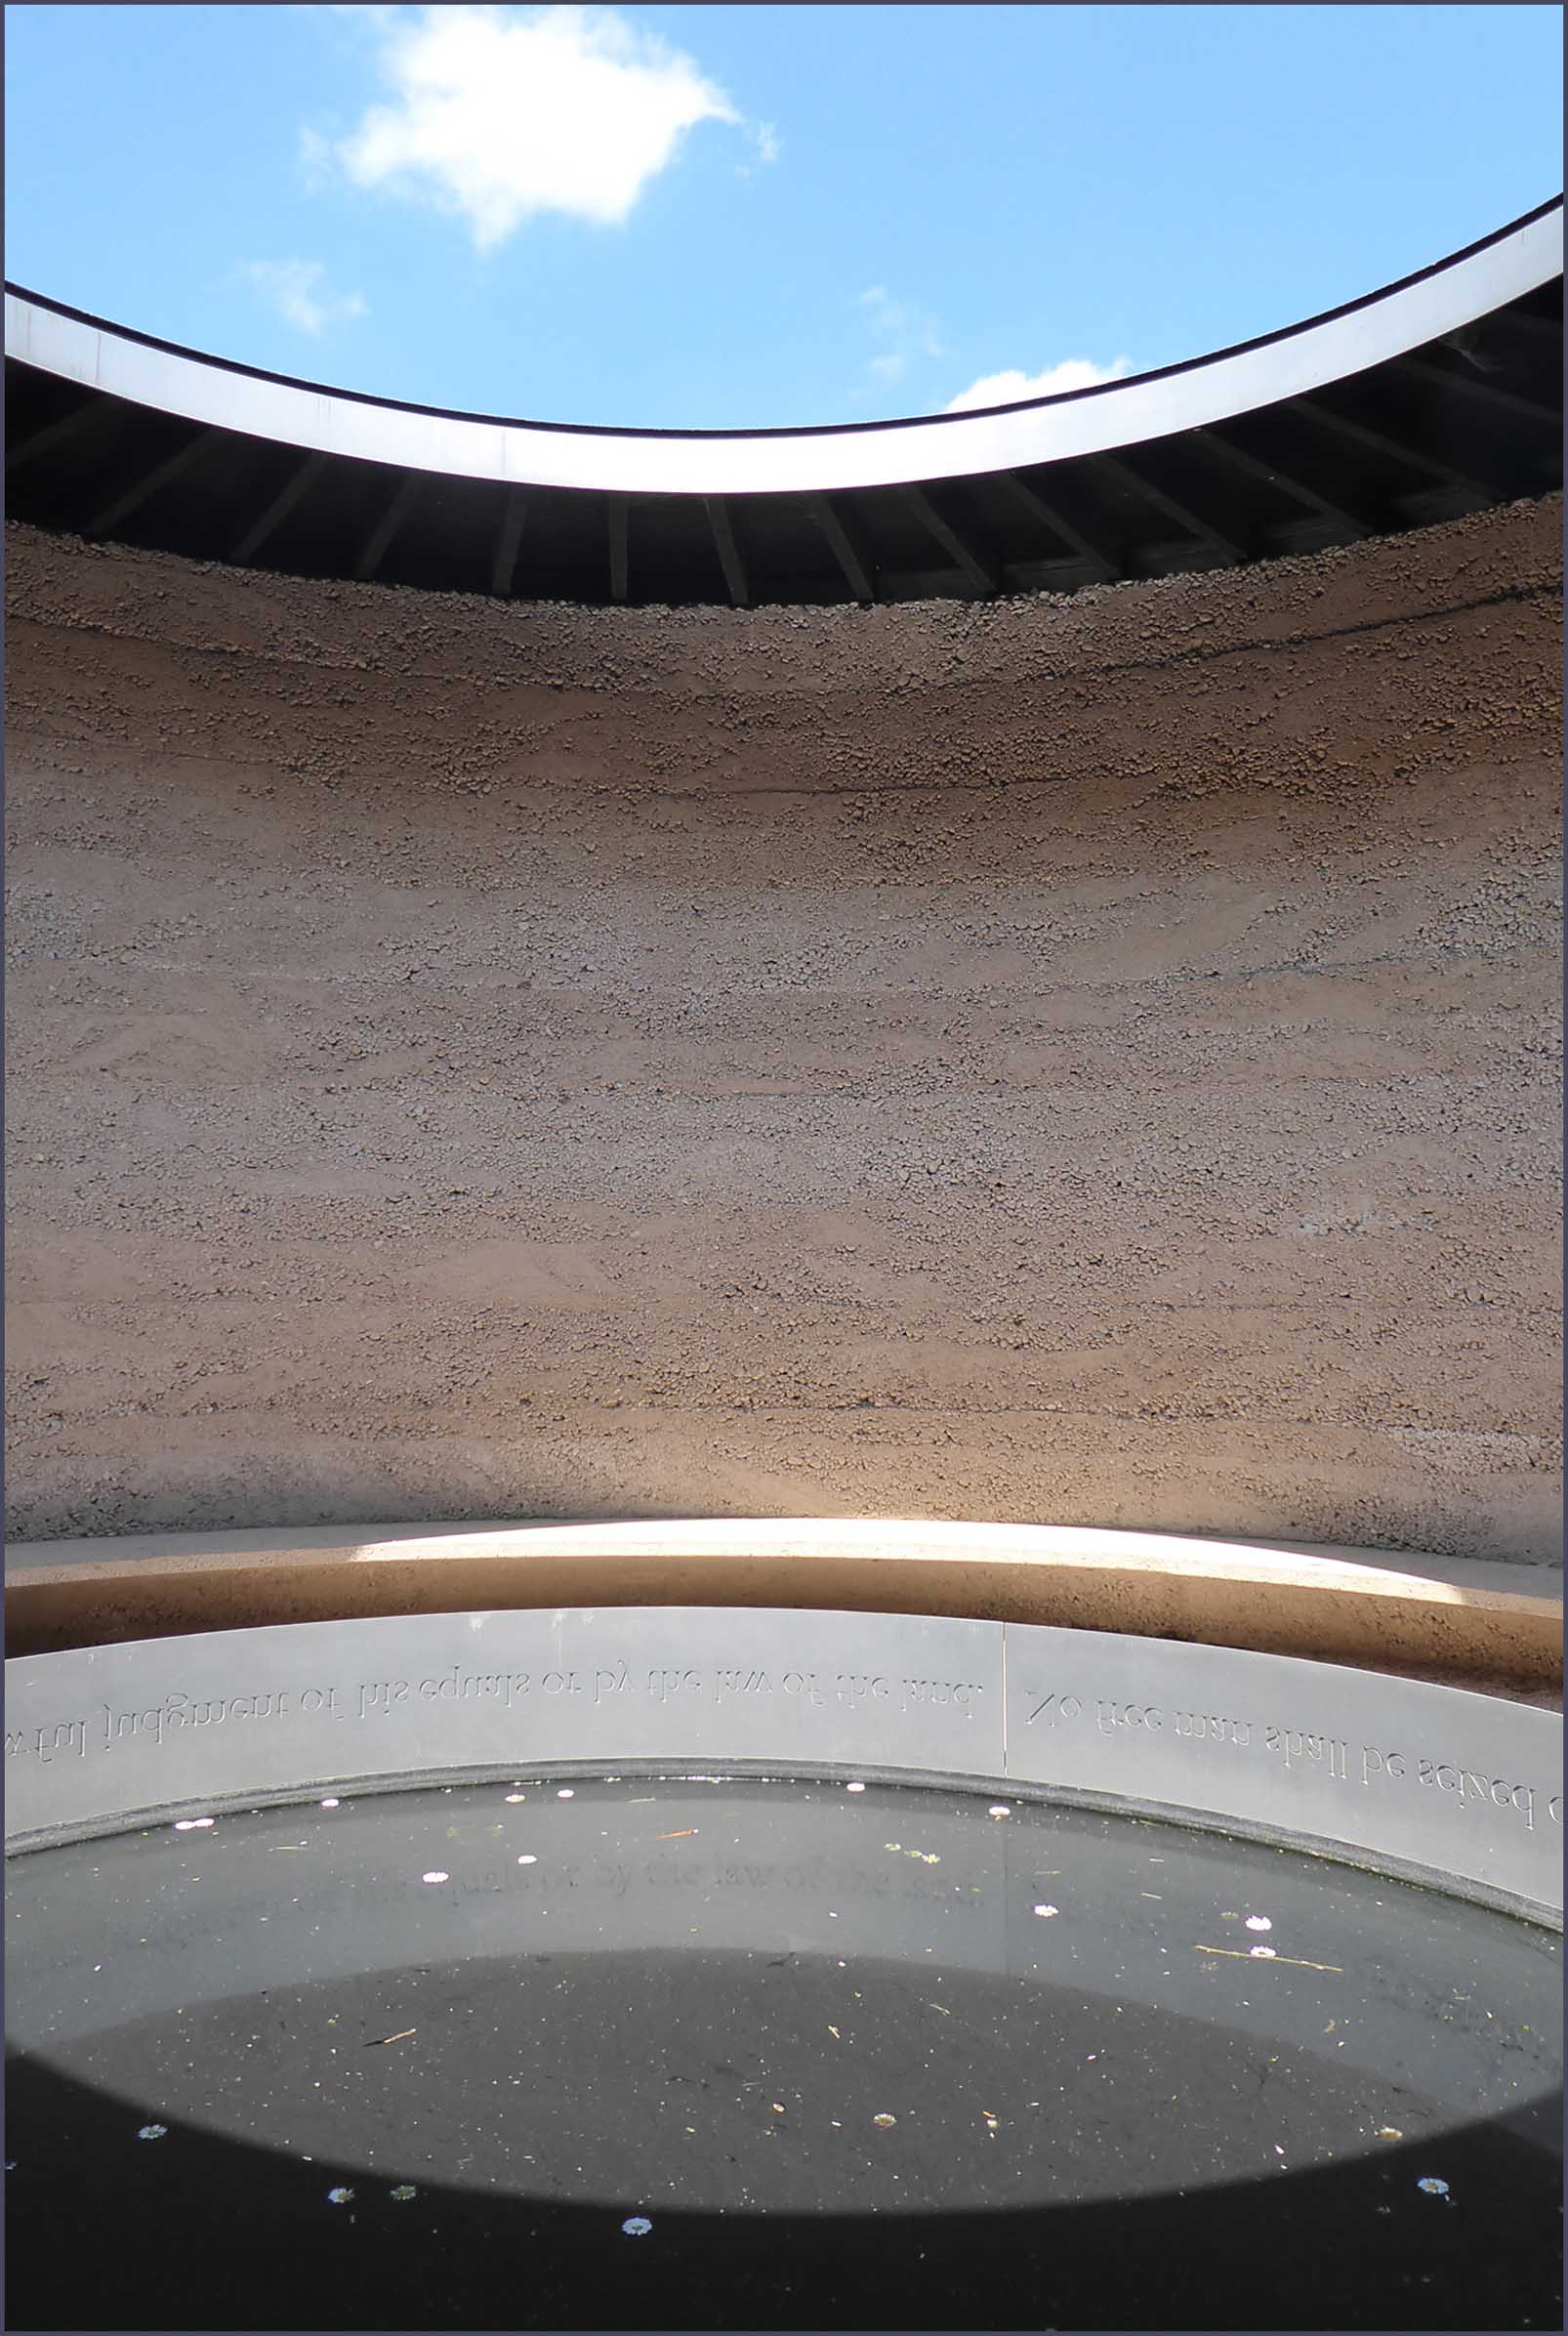 Curved wall with sky above